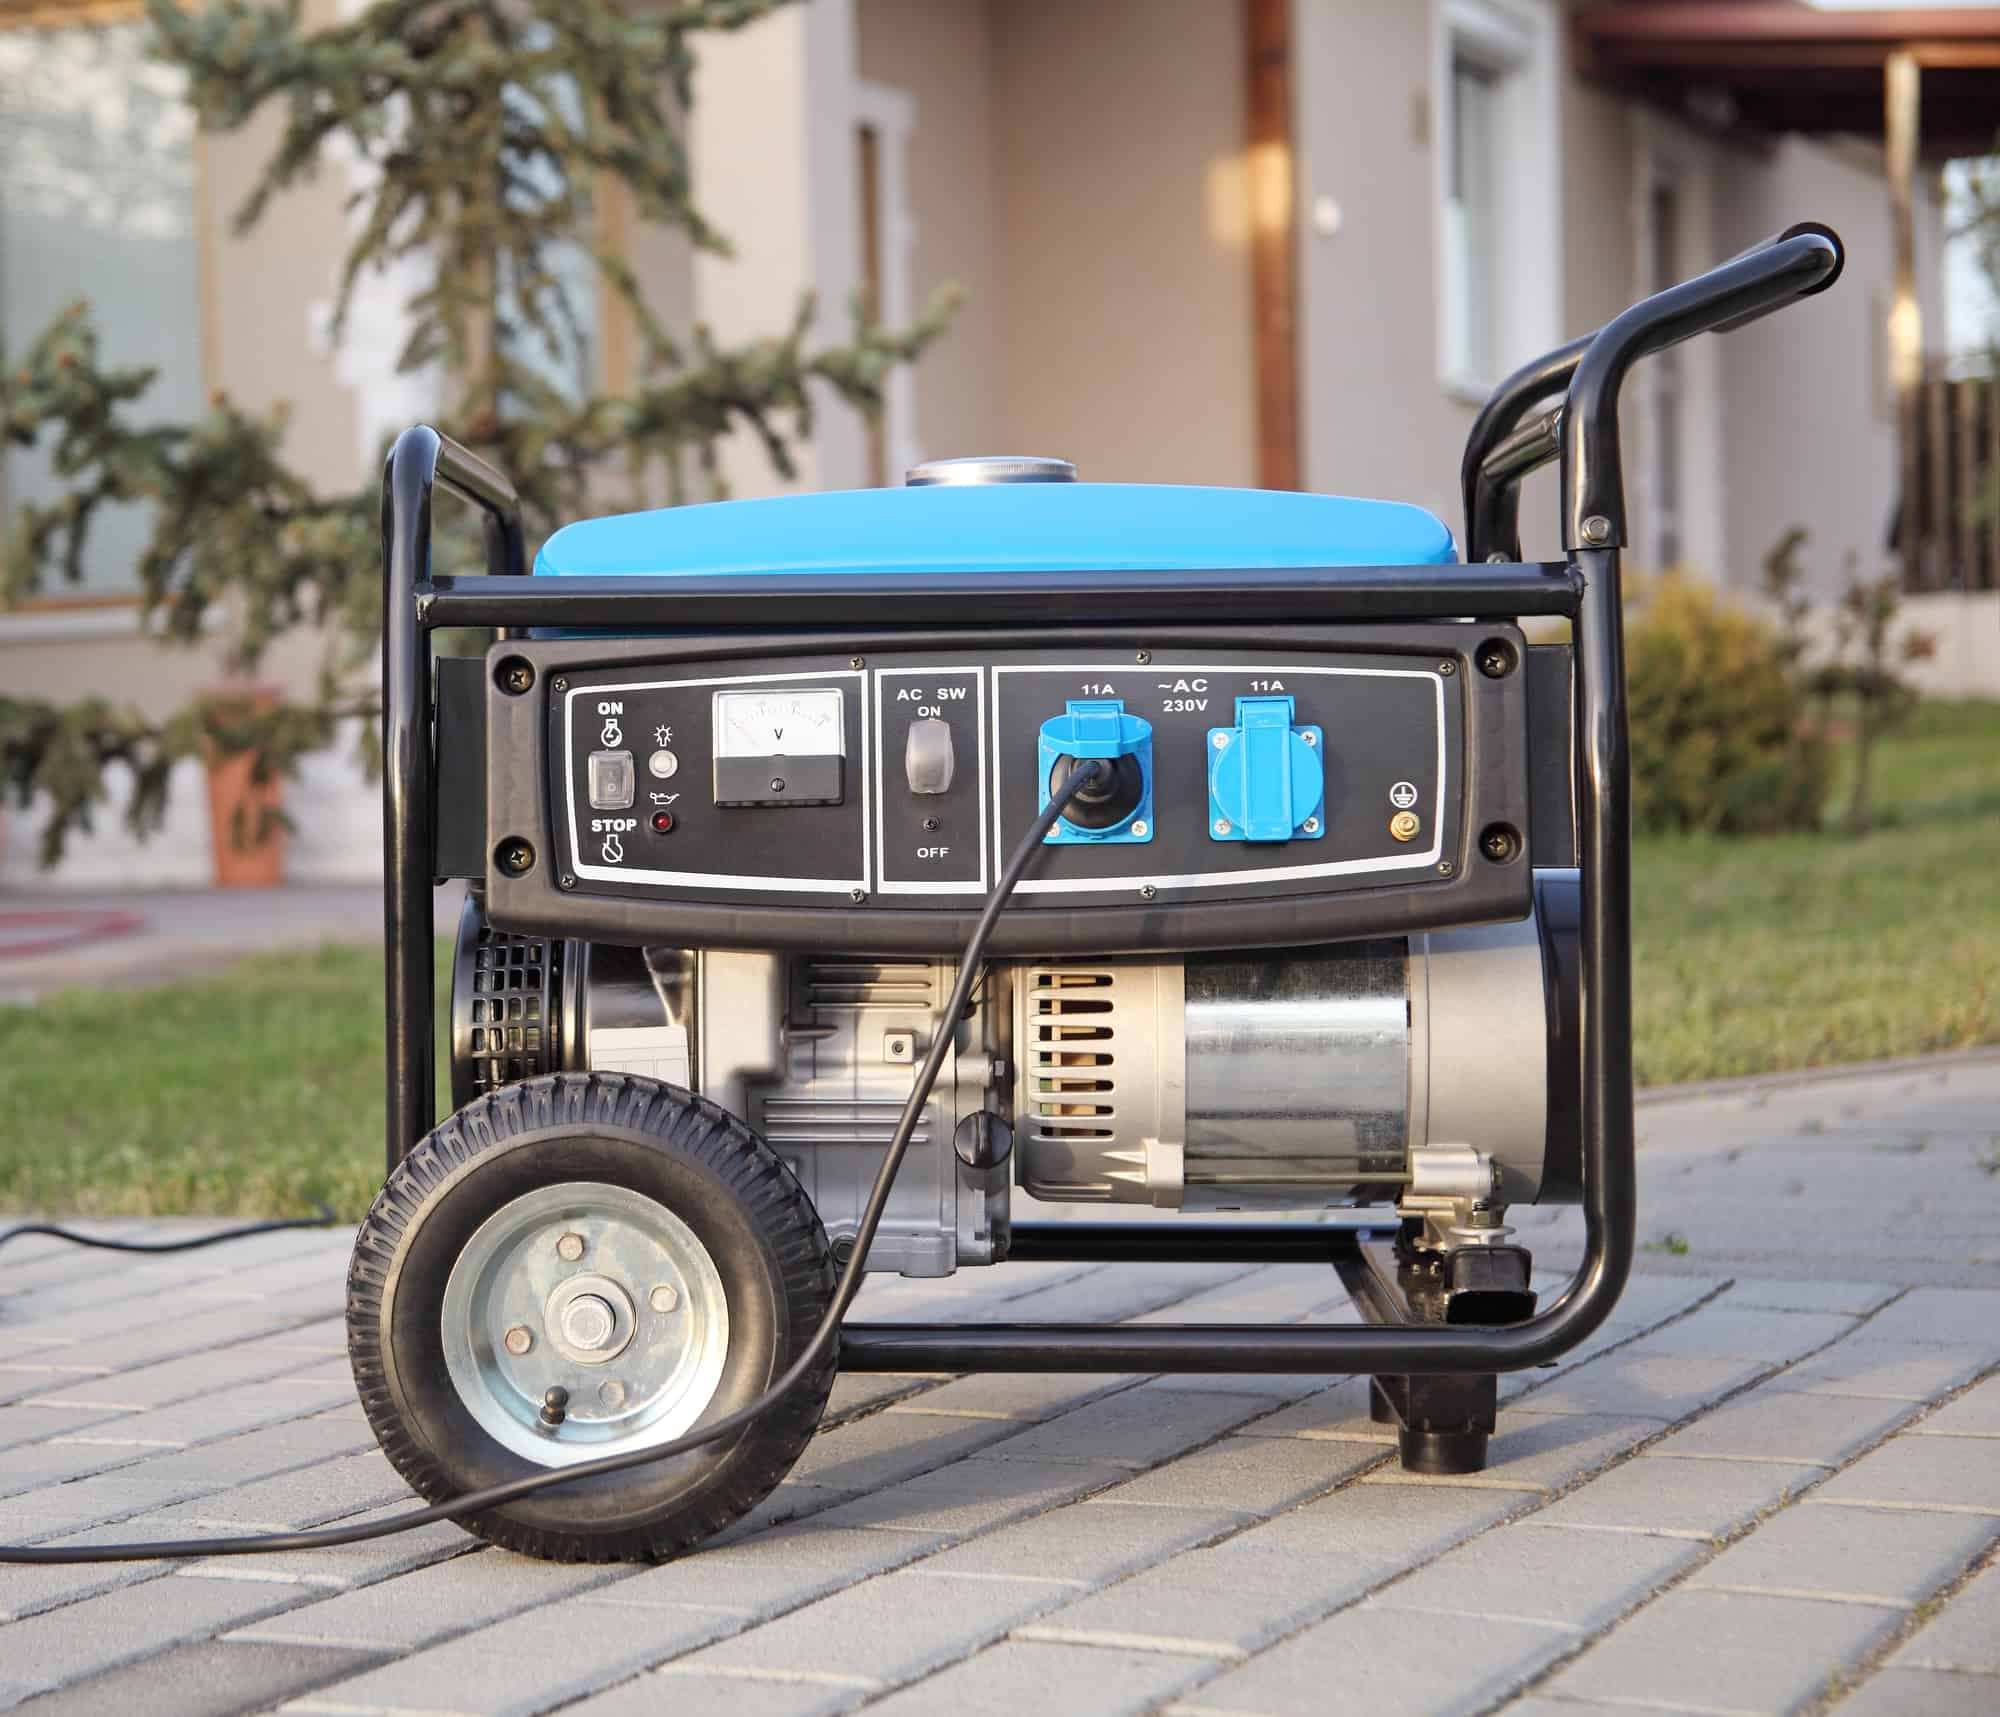 INVERTER OR GENERATOR – WHICH IS BEST FOR HOME USE